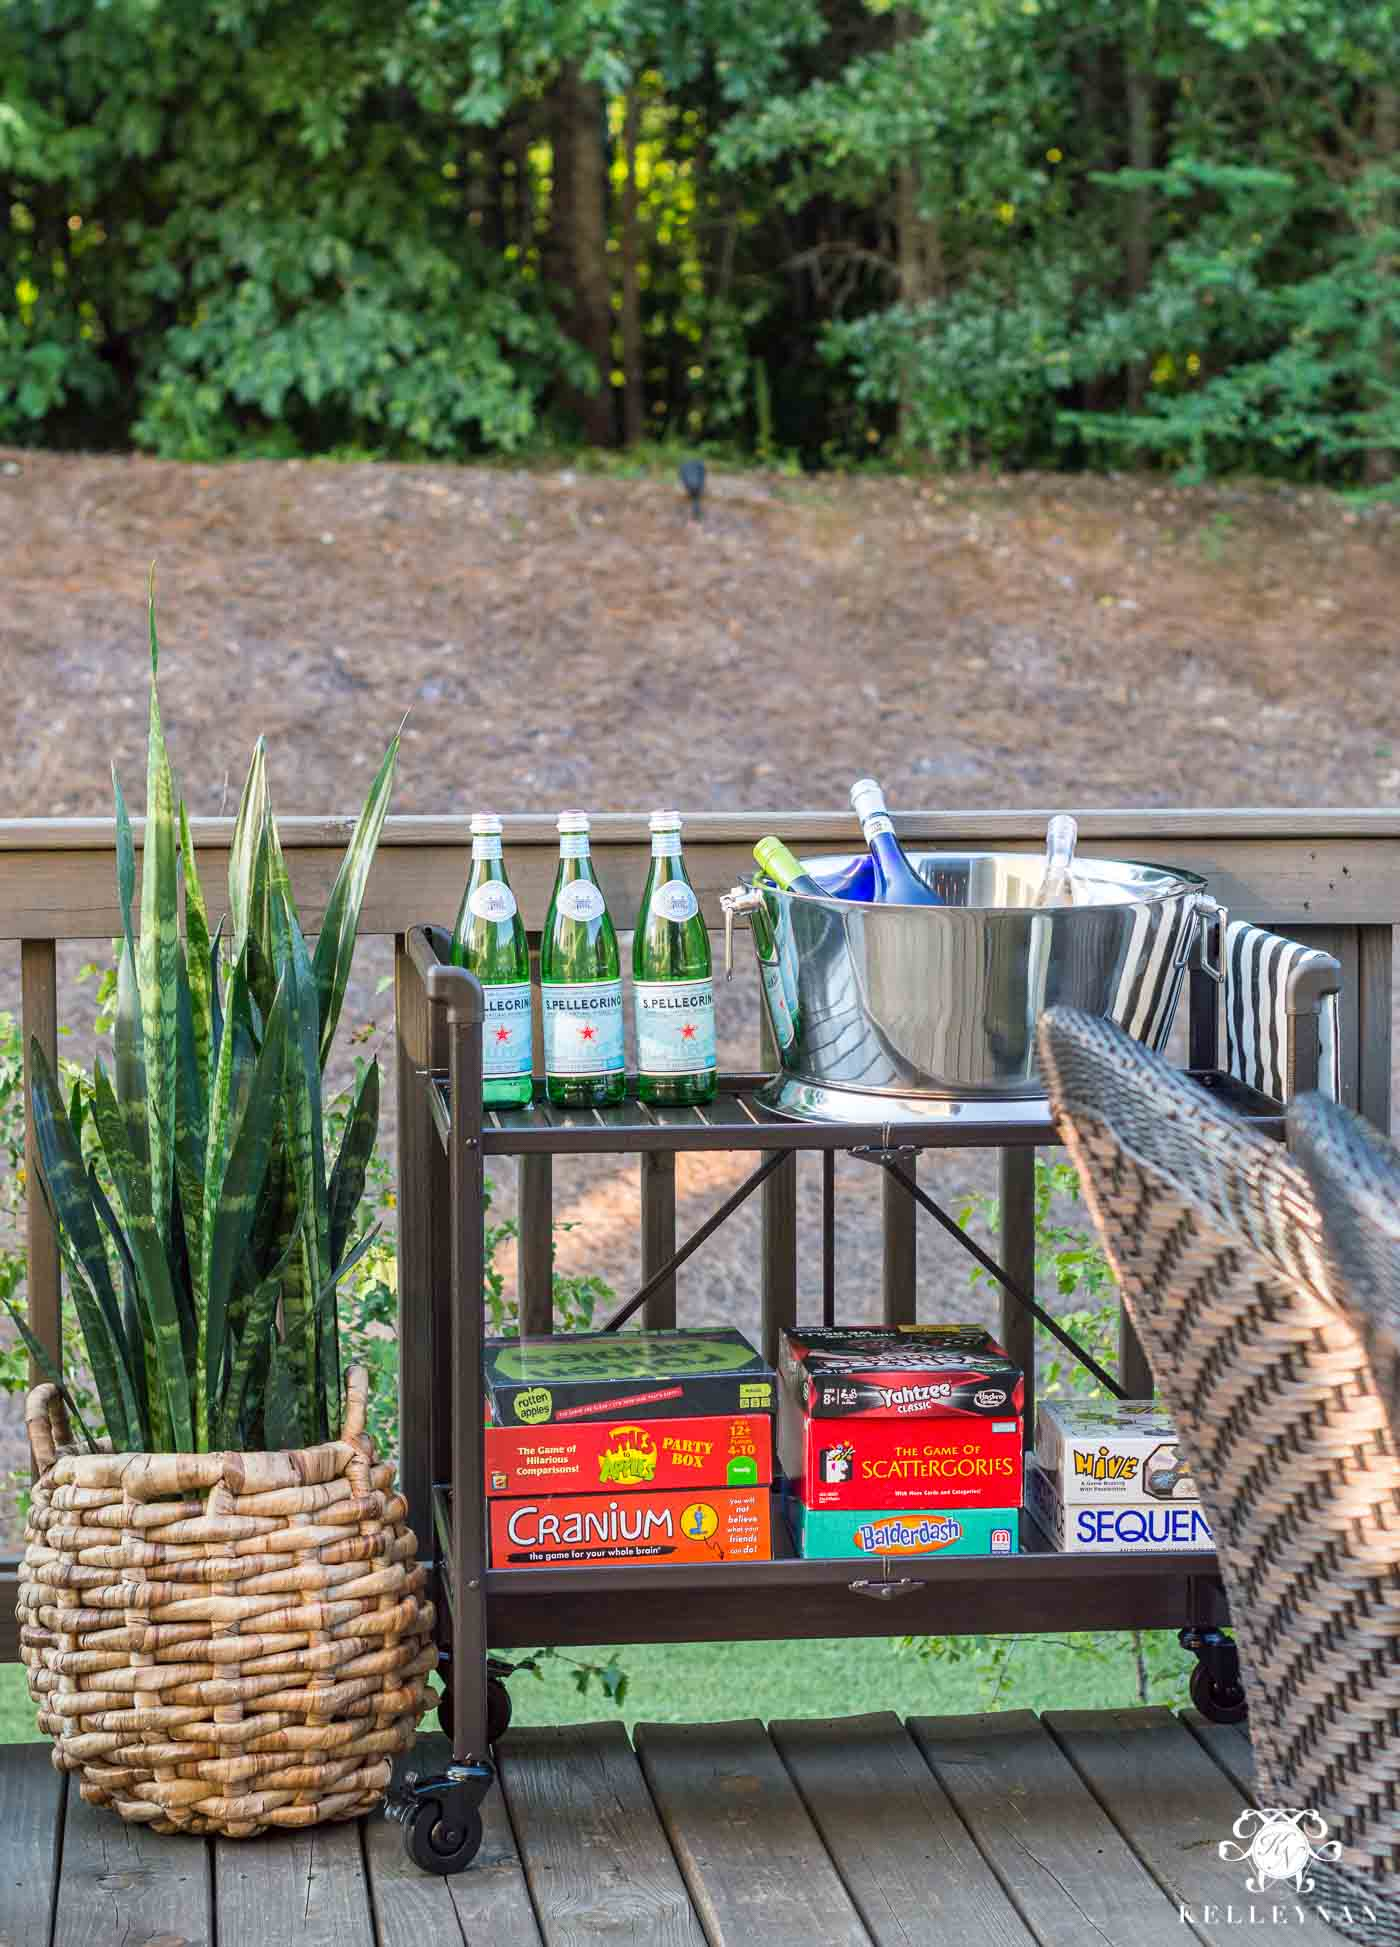 Outdoor bar cart setup for summer game night